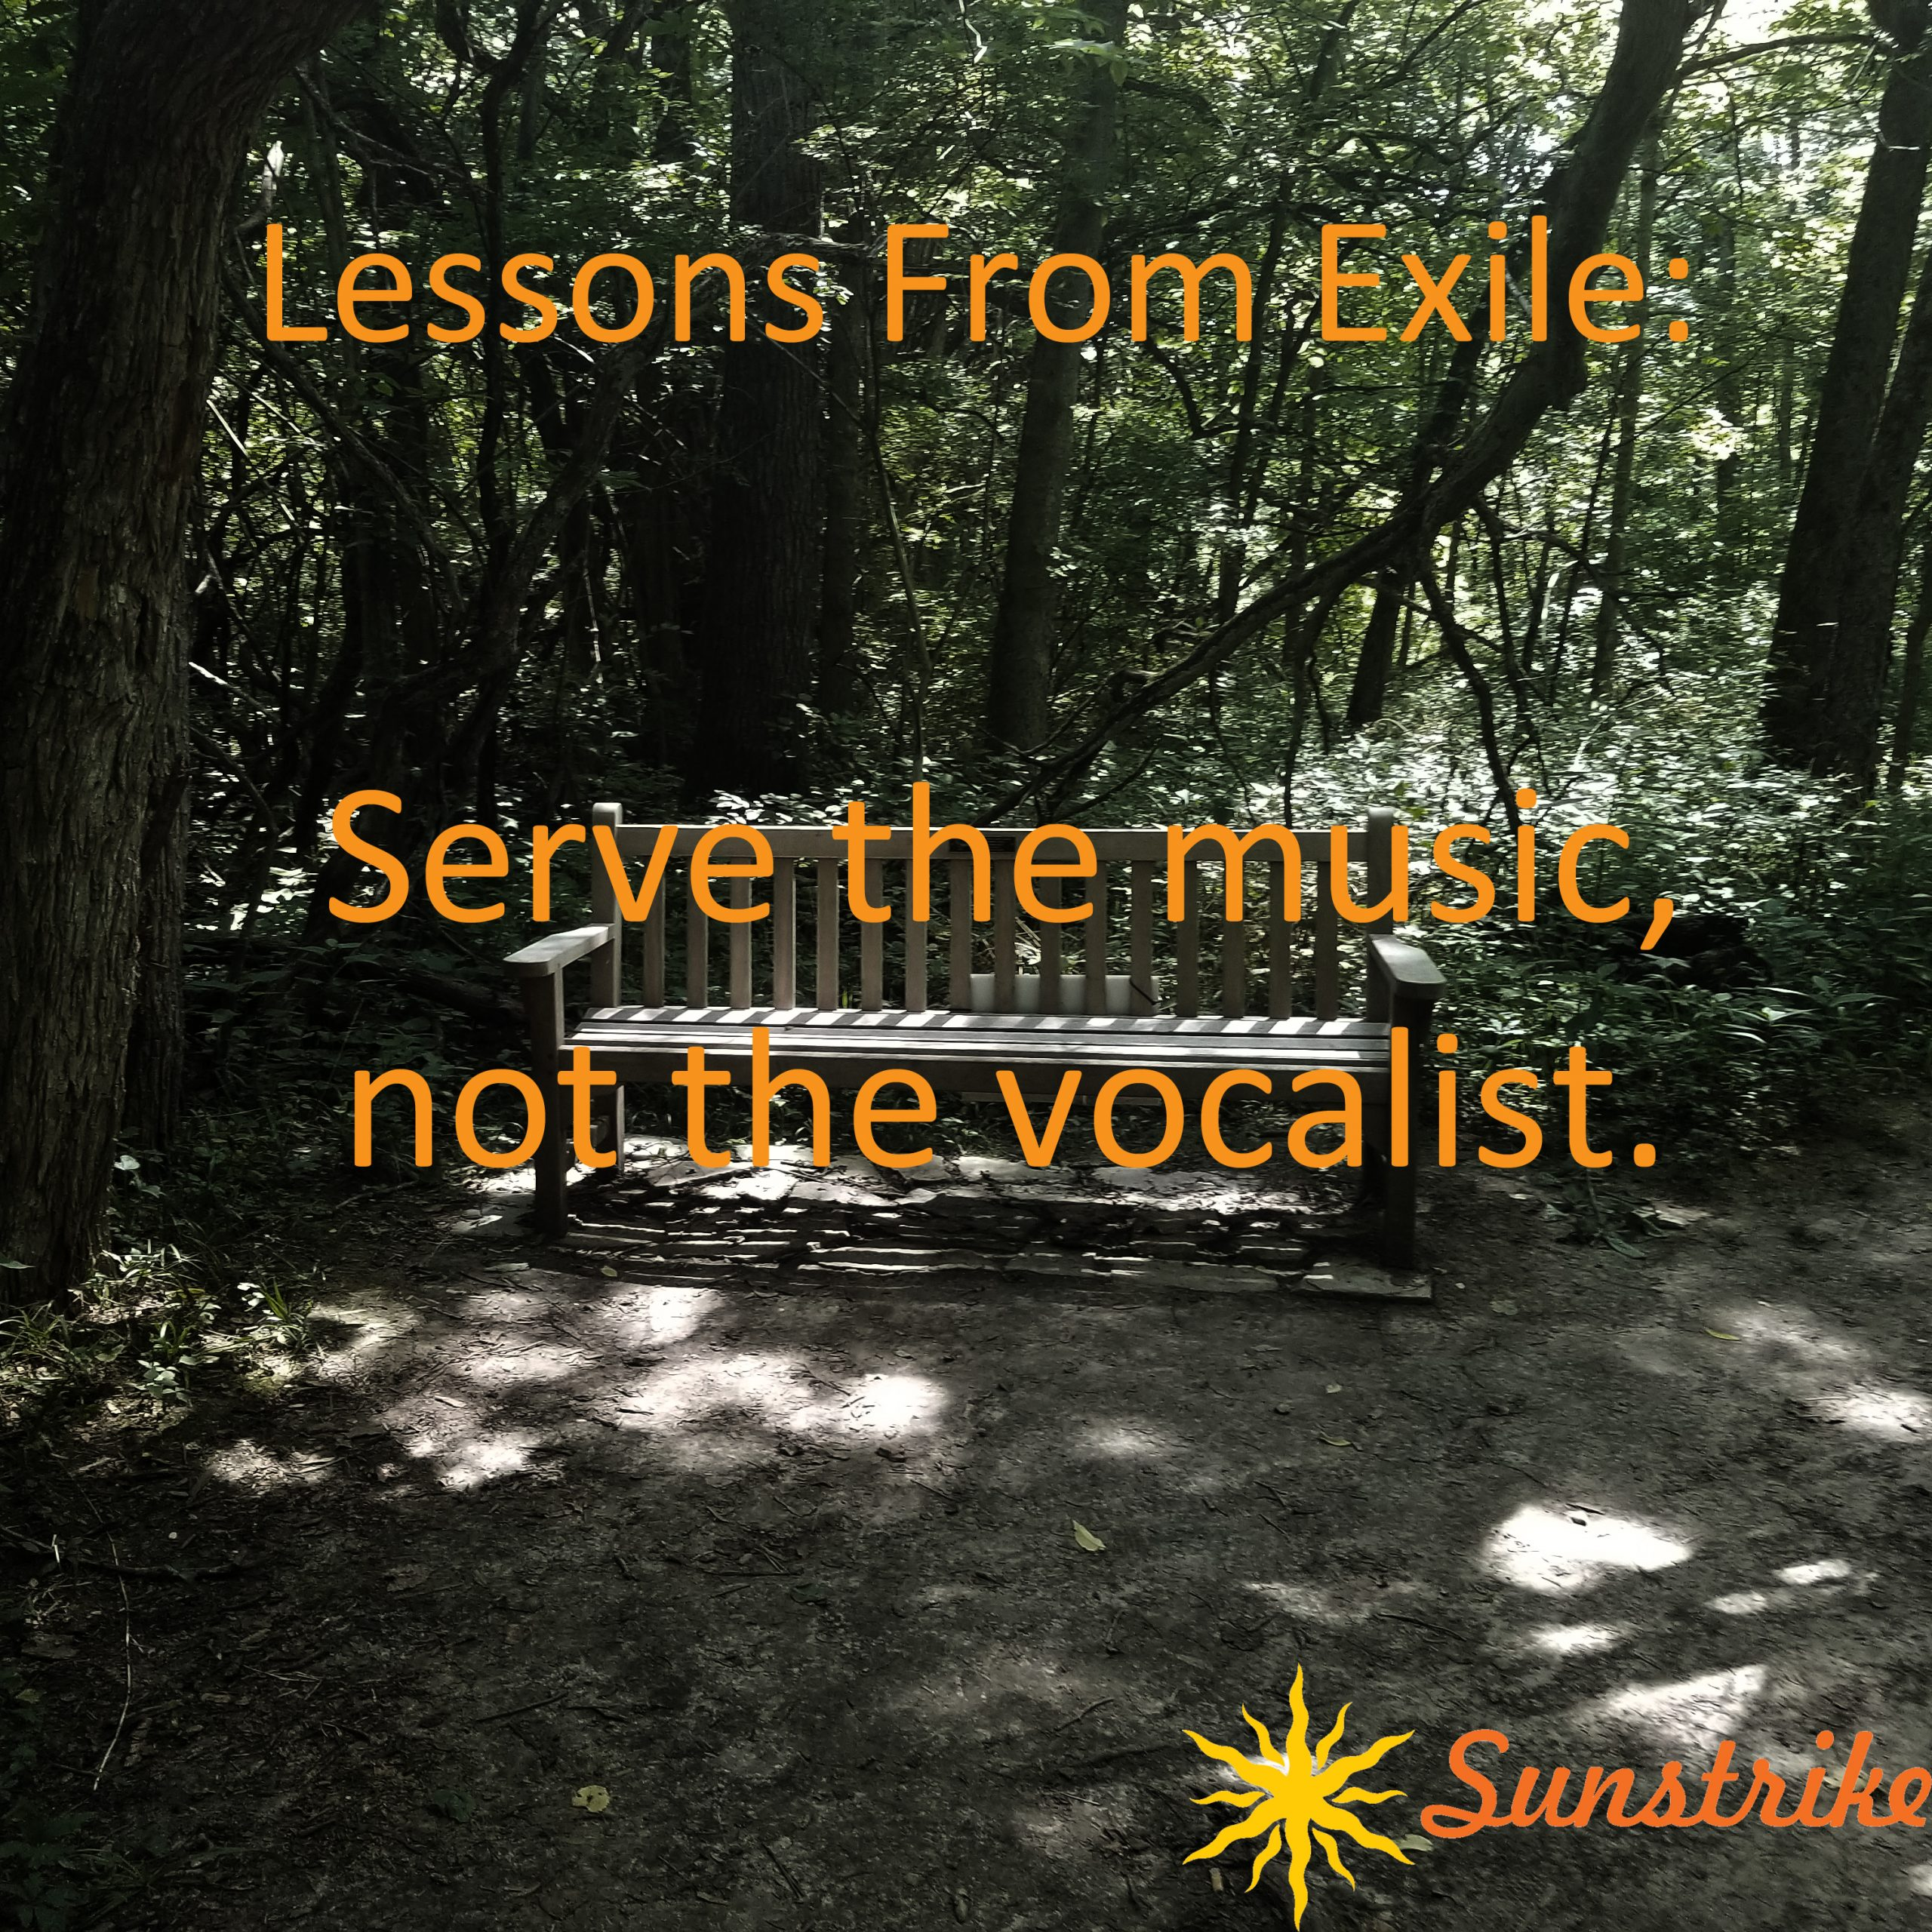 Lessons from Exile #6: Serve the music, not the vocalist.